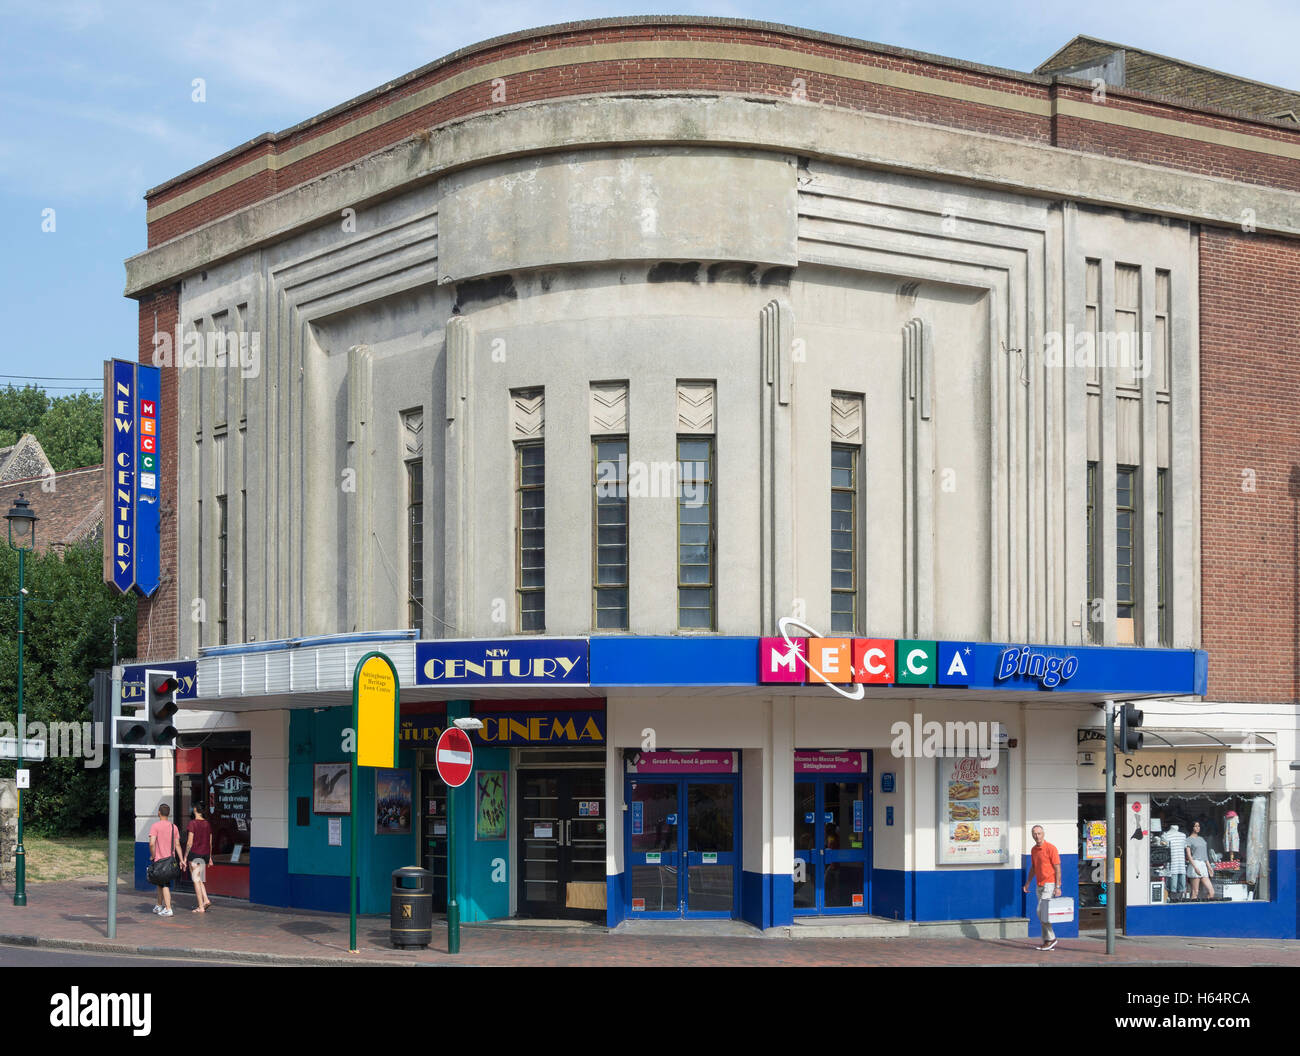 New Century Cinema, Sittingbourne High Street, Sittingbourne